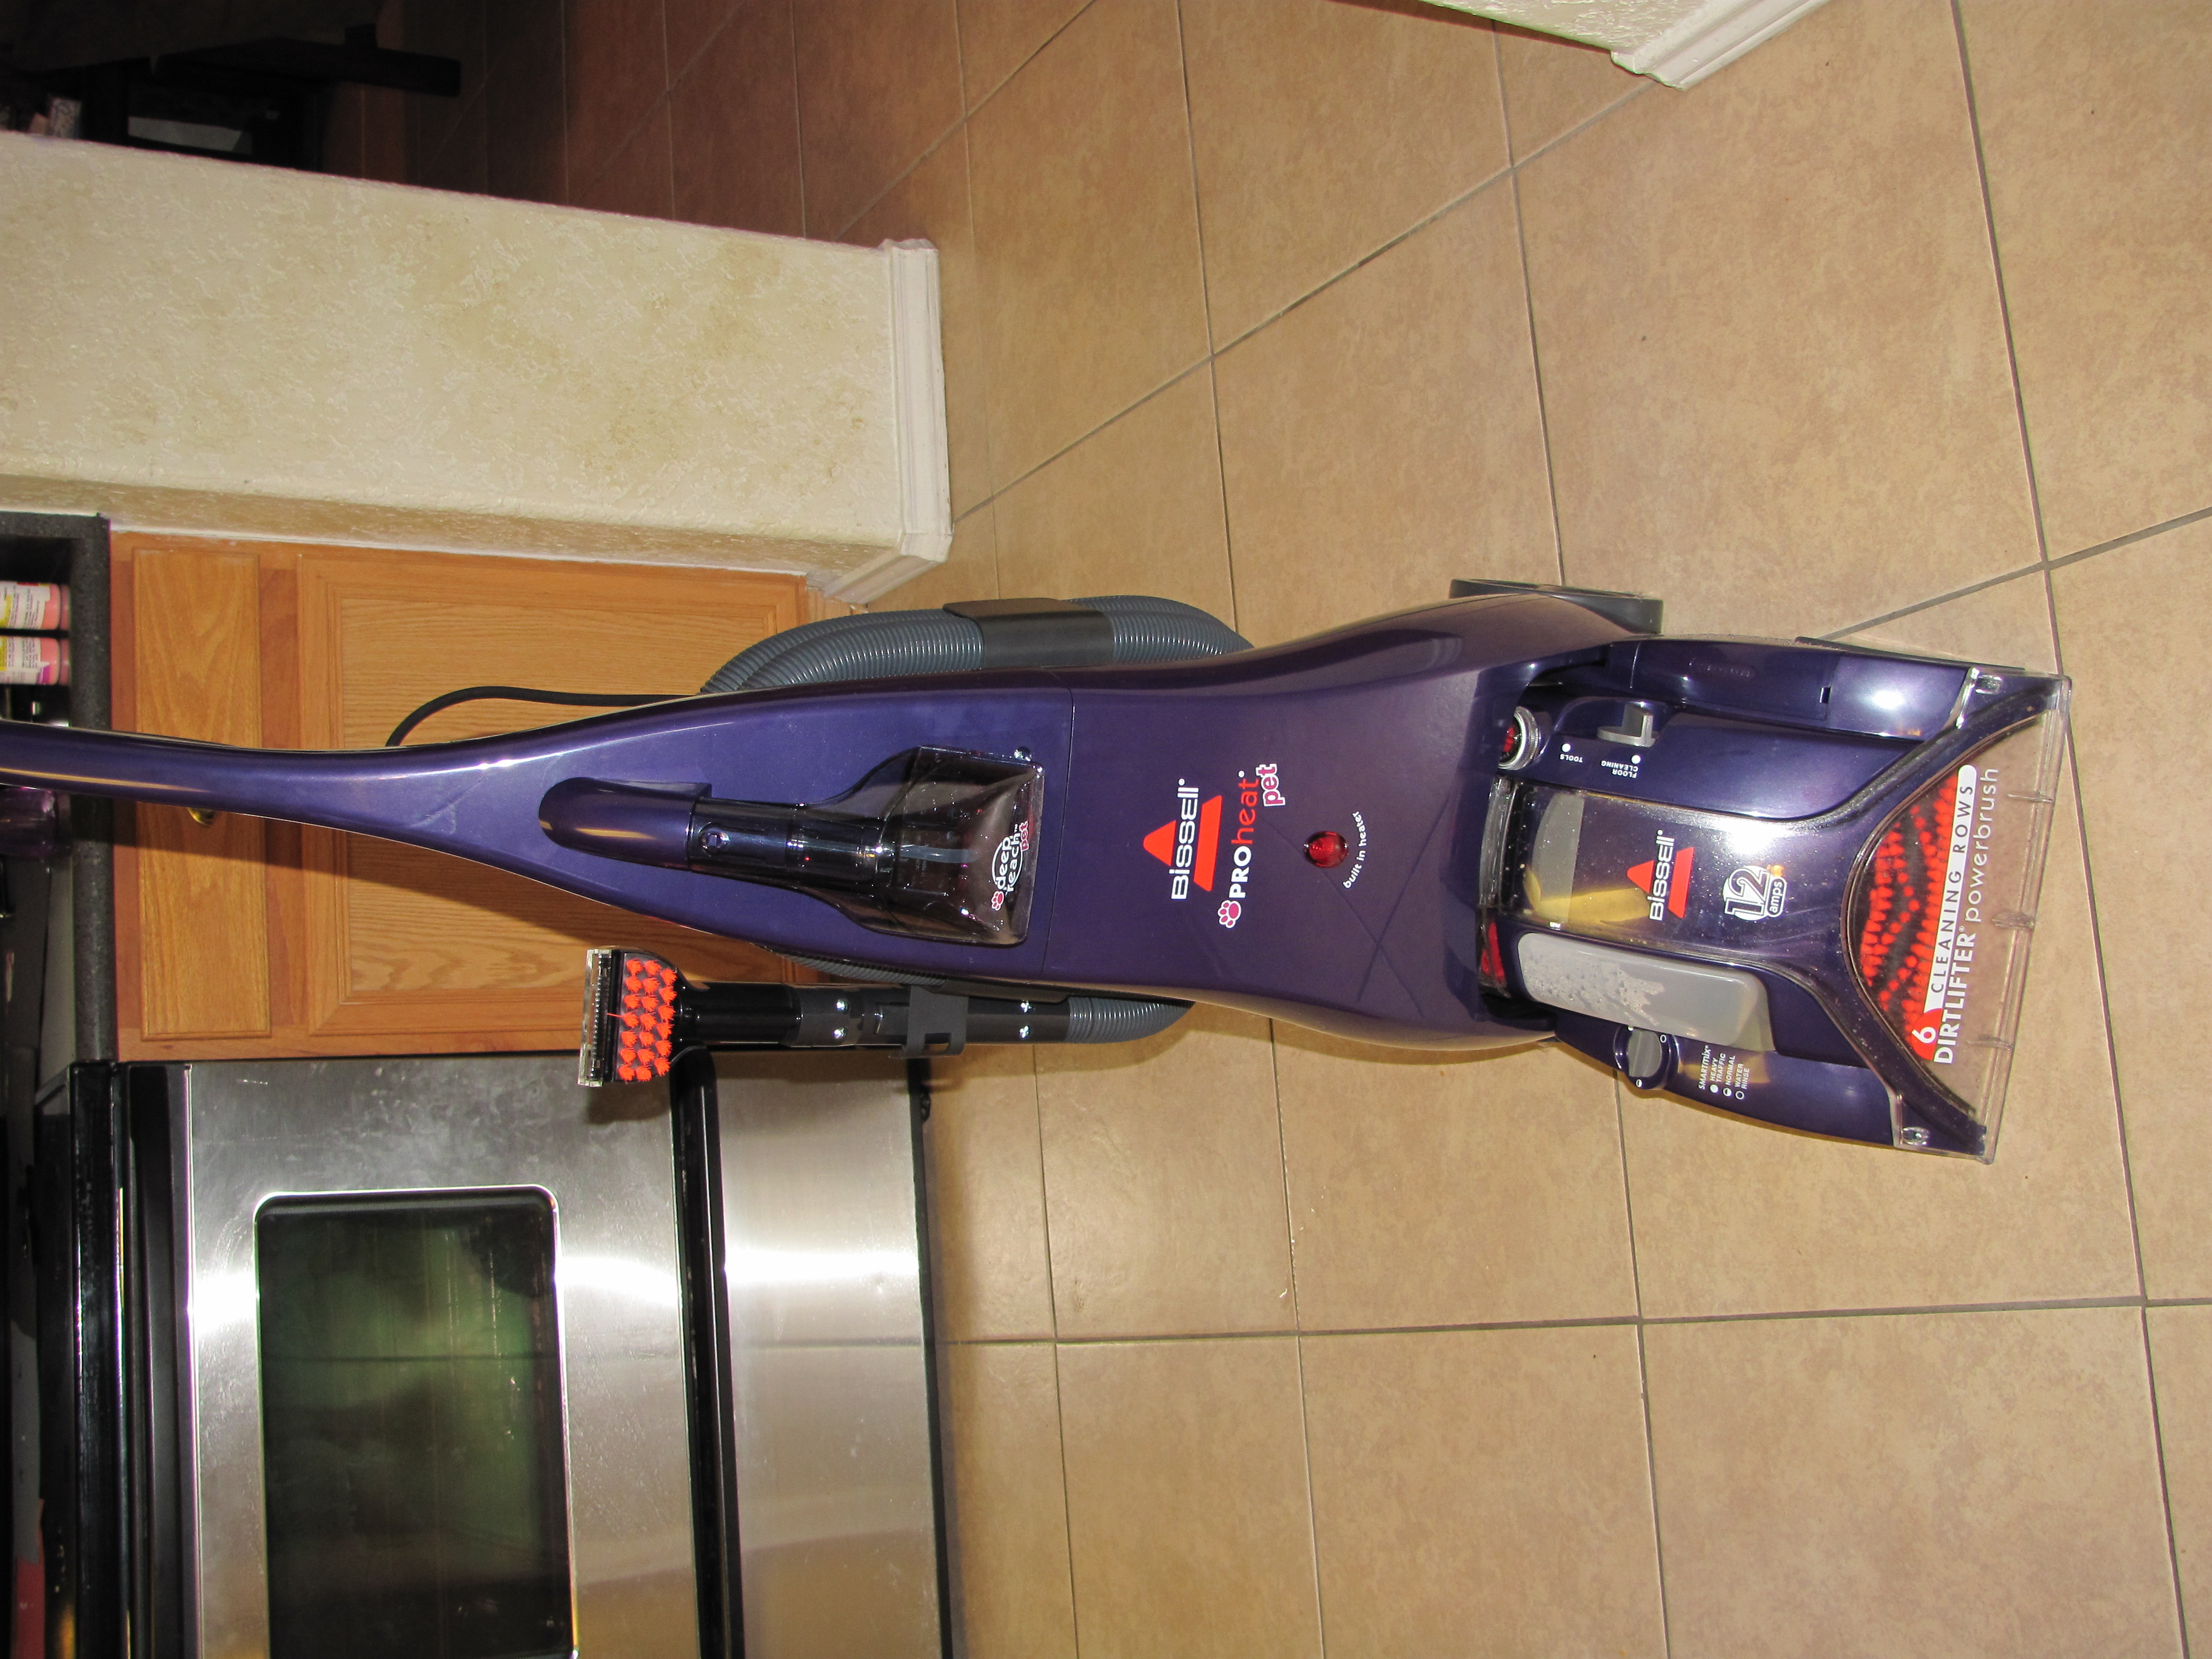 bissell heated carpet cleaner tile floor my bissell trying it now proheat carpet cleaner tried it liked